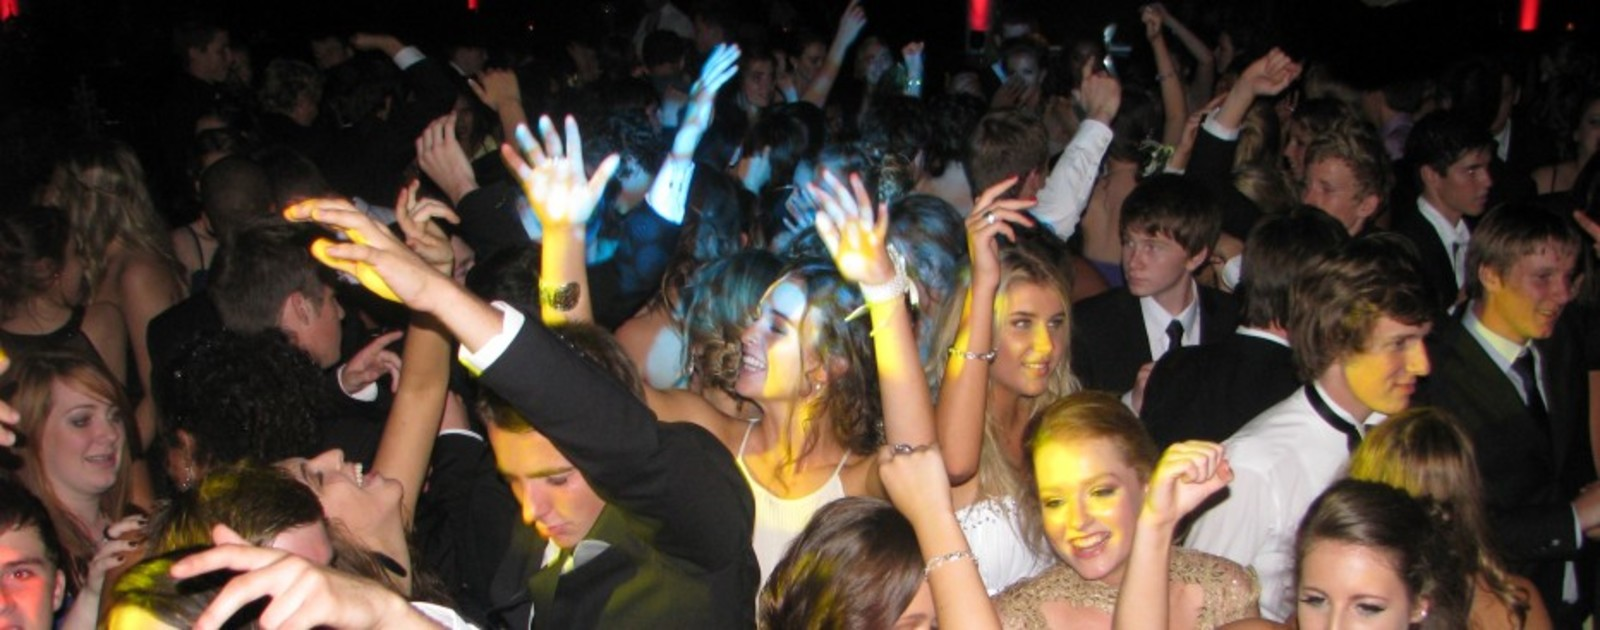 auckland_dj_hire_for_all_events_and_parties_you_need and school ball.jpg